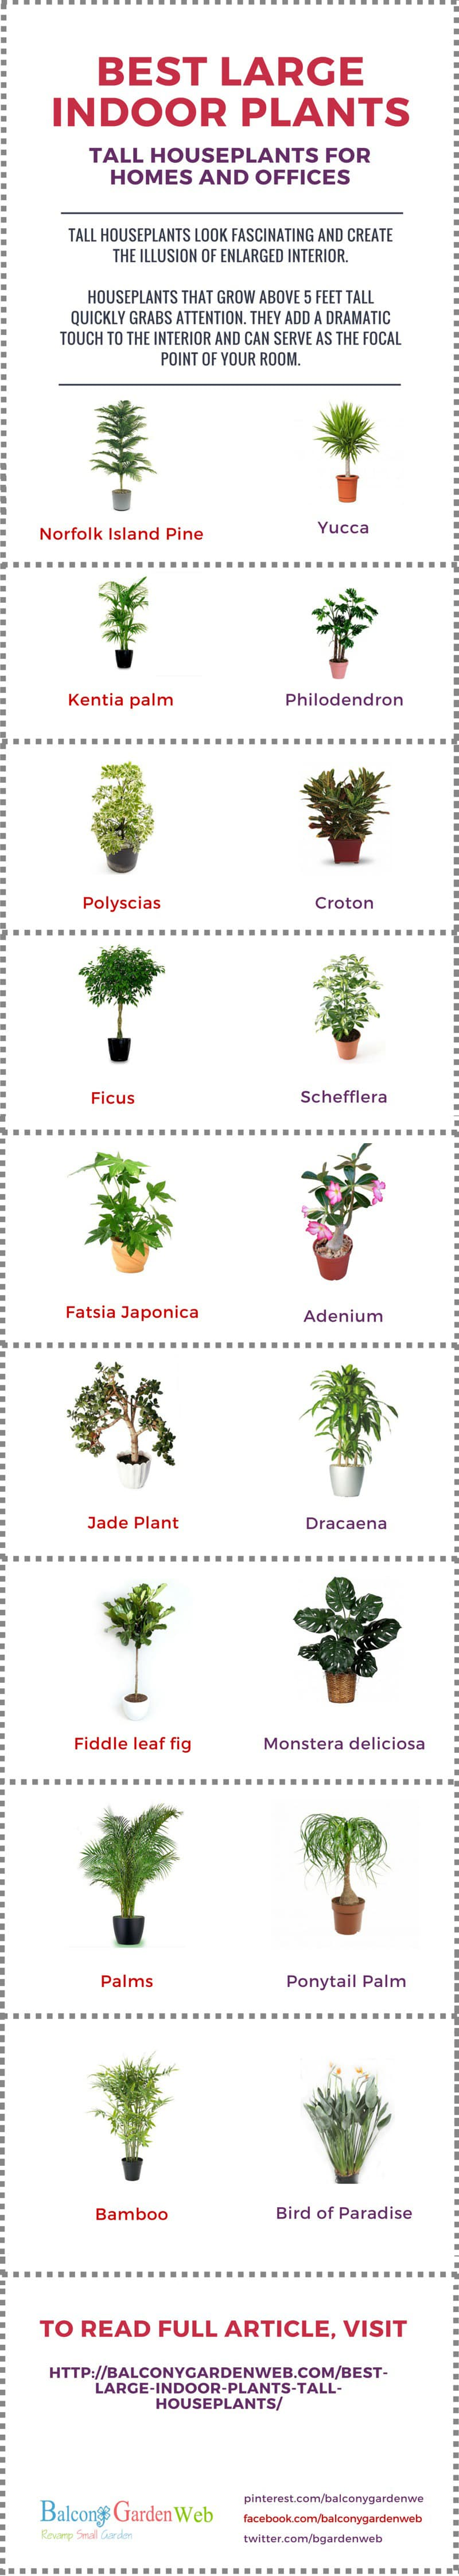 Indoor Plants For The Office 18 Best Large Indoor Plants Tall Houseplants For Home And